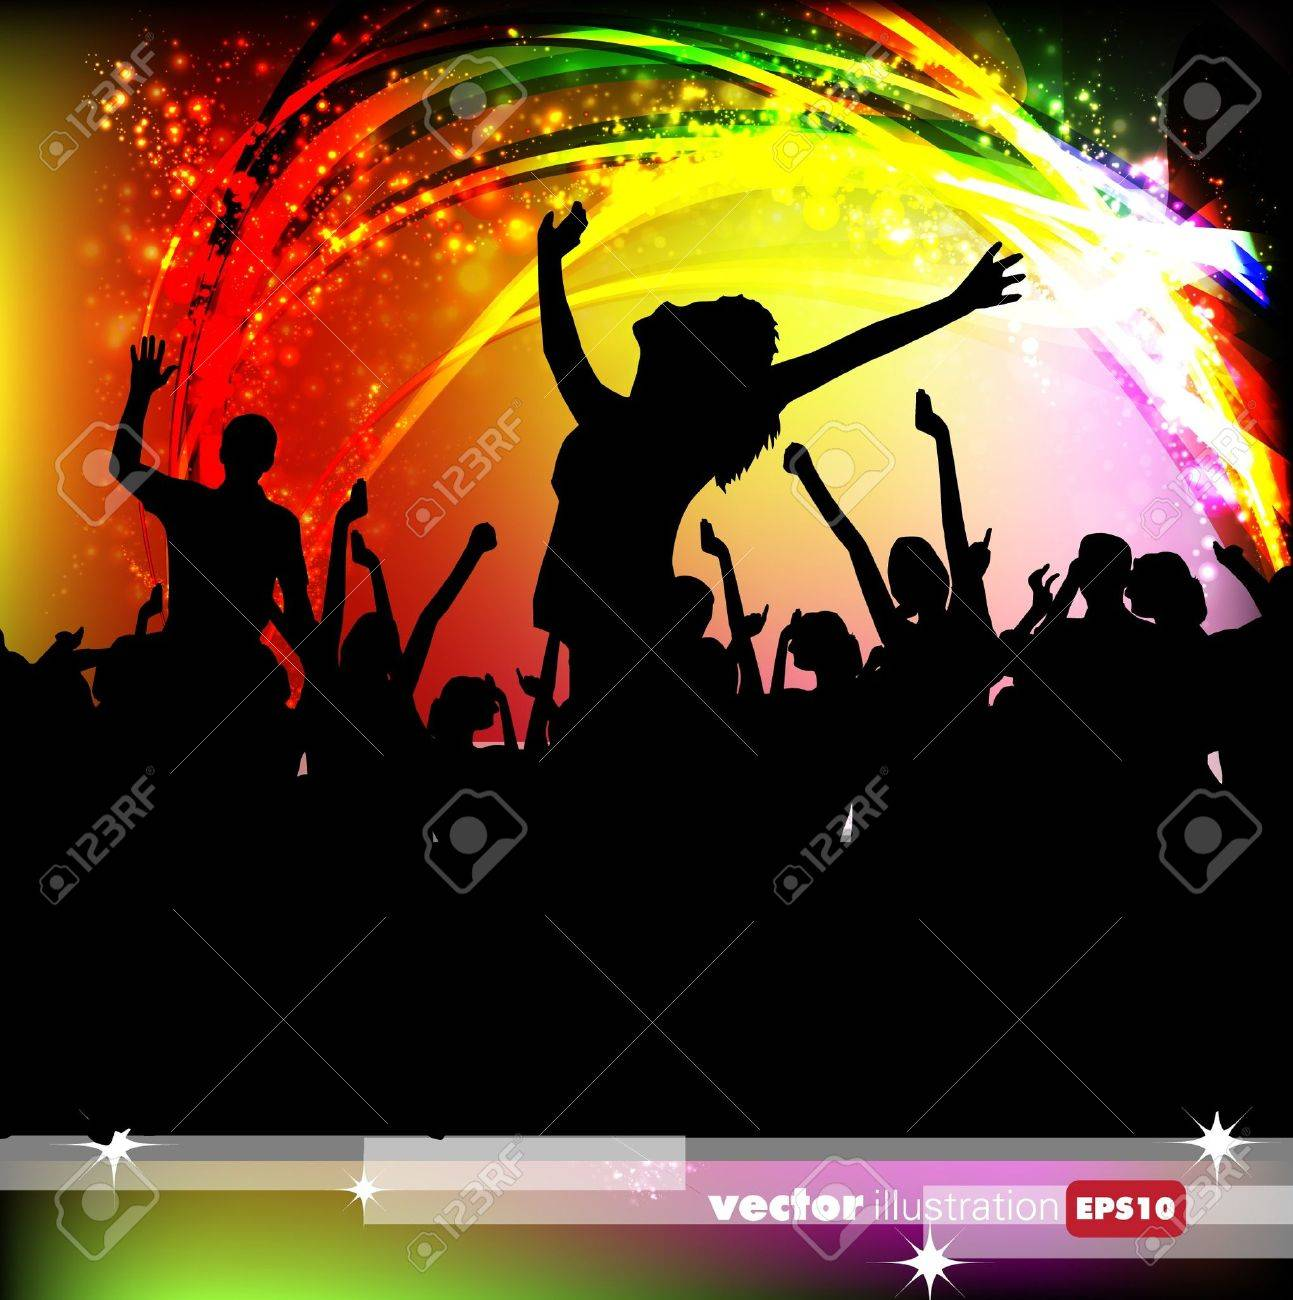 A crowd of people. Music event illustration. Stock Vector - 10733283